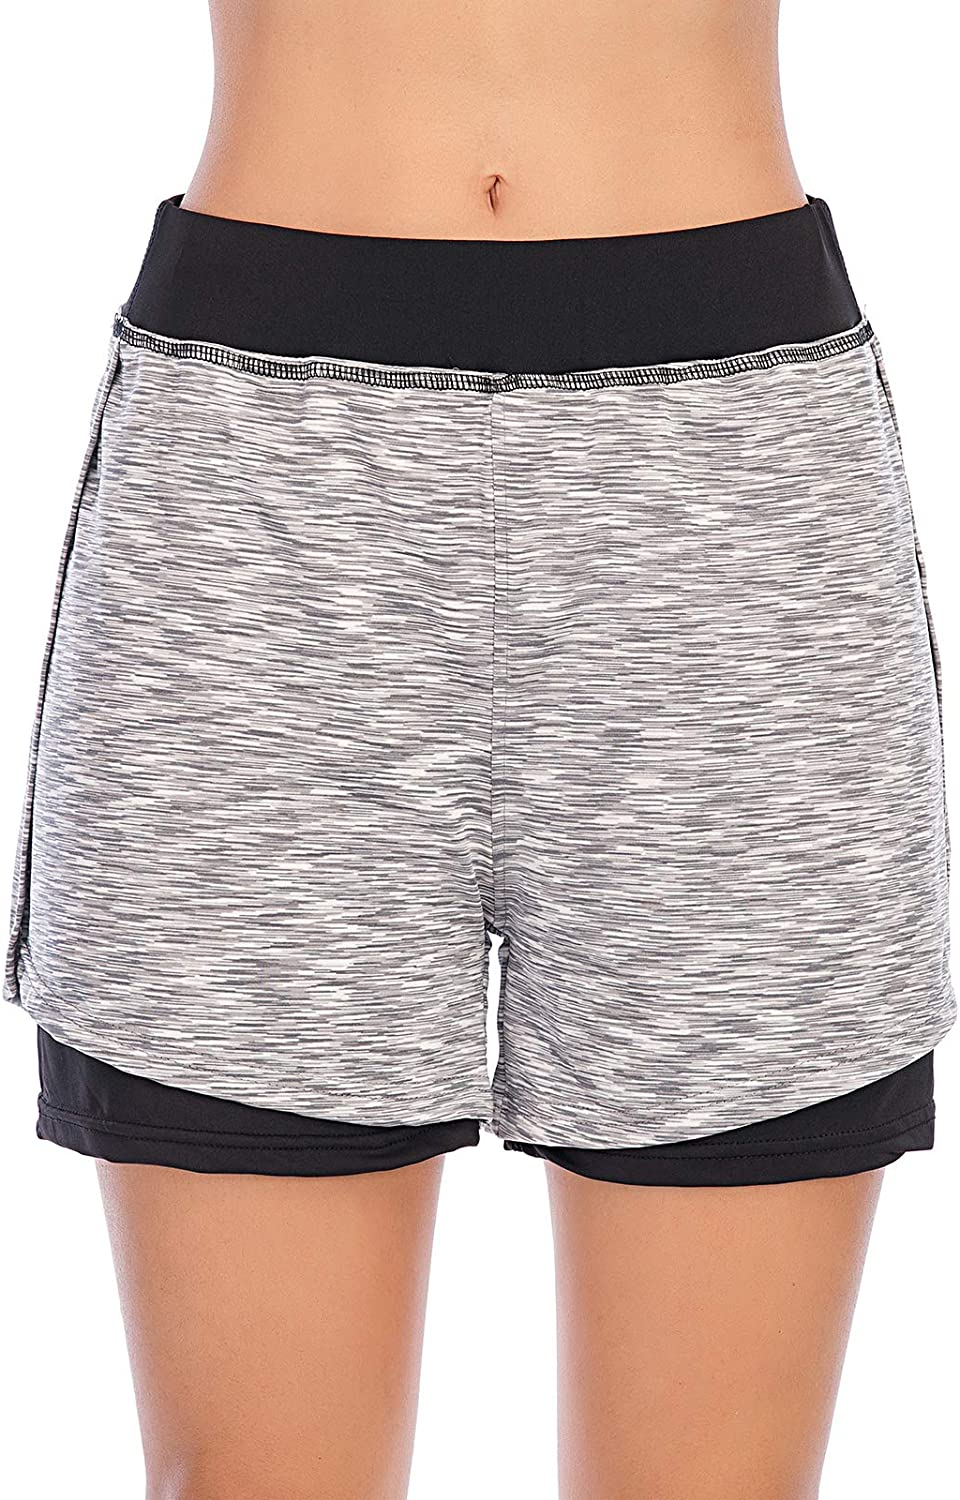 YAENEVE Womens Running Shorts with Pocket 2 in 1 Elastic Waist Double Layer Sports Workout Athletic Yoga Shorts with Liner